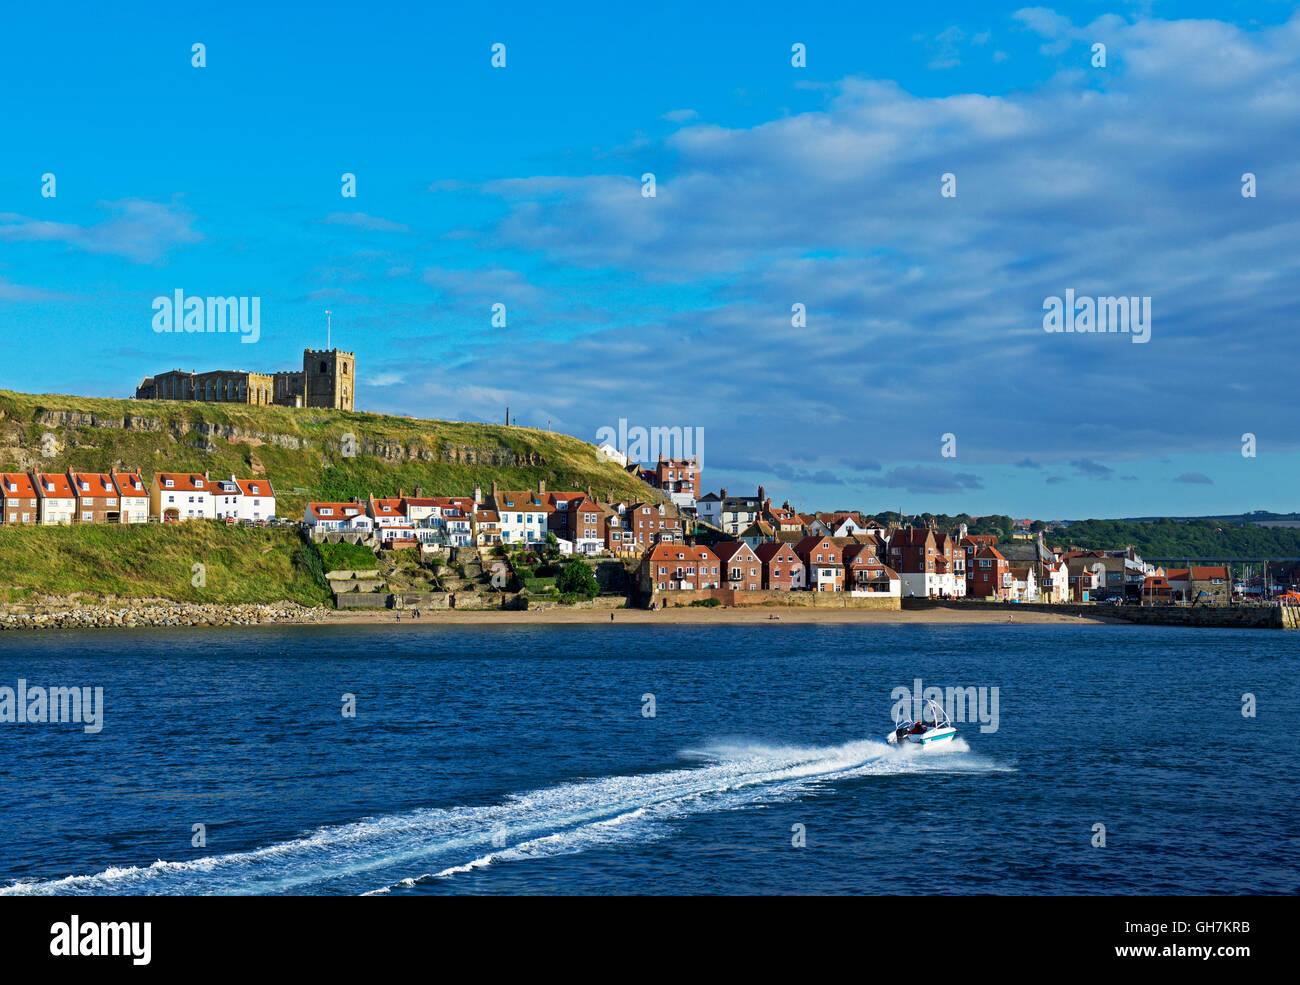 The estuary of the River Esk at Whitby, North Yorkshire, England UK - Stock Image